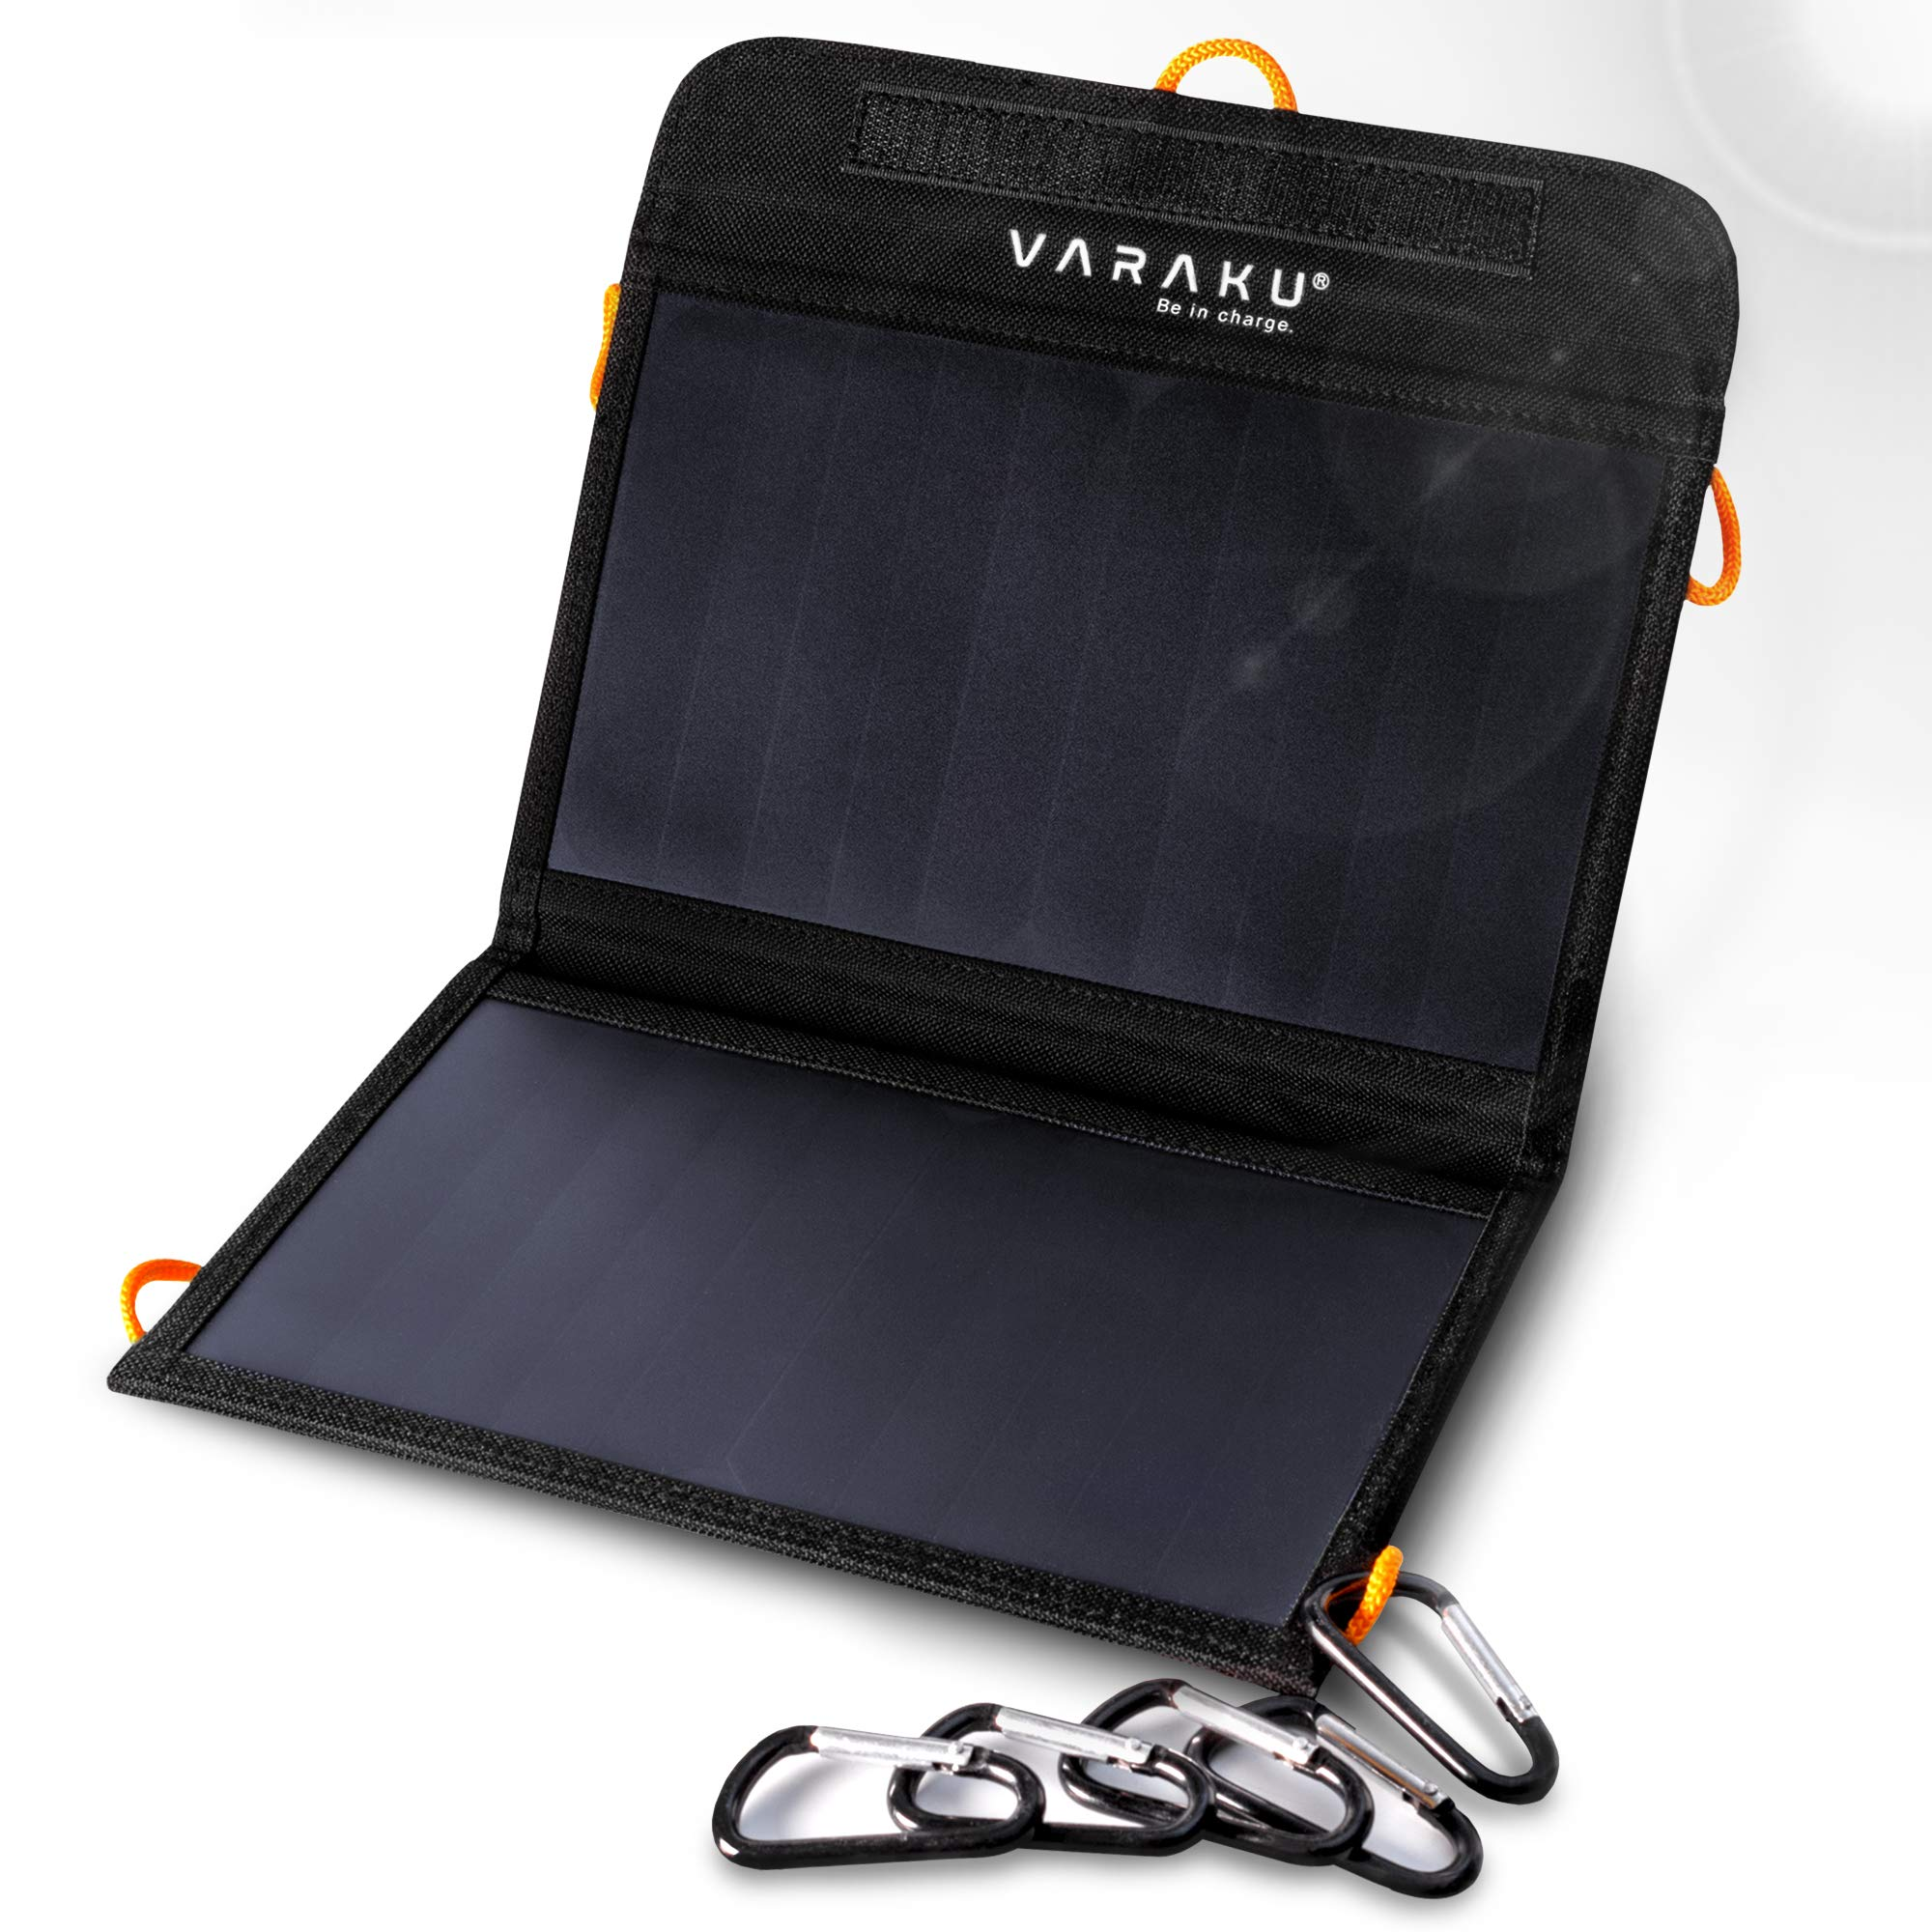 Portable Solar Charger 10W - Dual USB Solar Panel Foldable - Best Power for, iPhone, X, 8, 7, 6s, iPad, Cell Phone Android & Electronic Devices - Waterproof Sun Phone Charger for Camping & Hiking